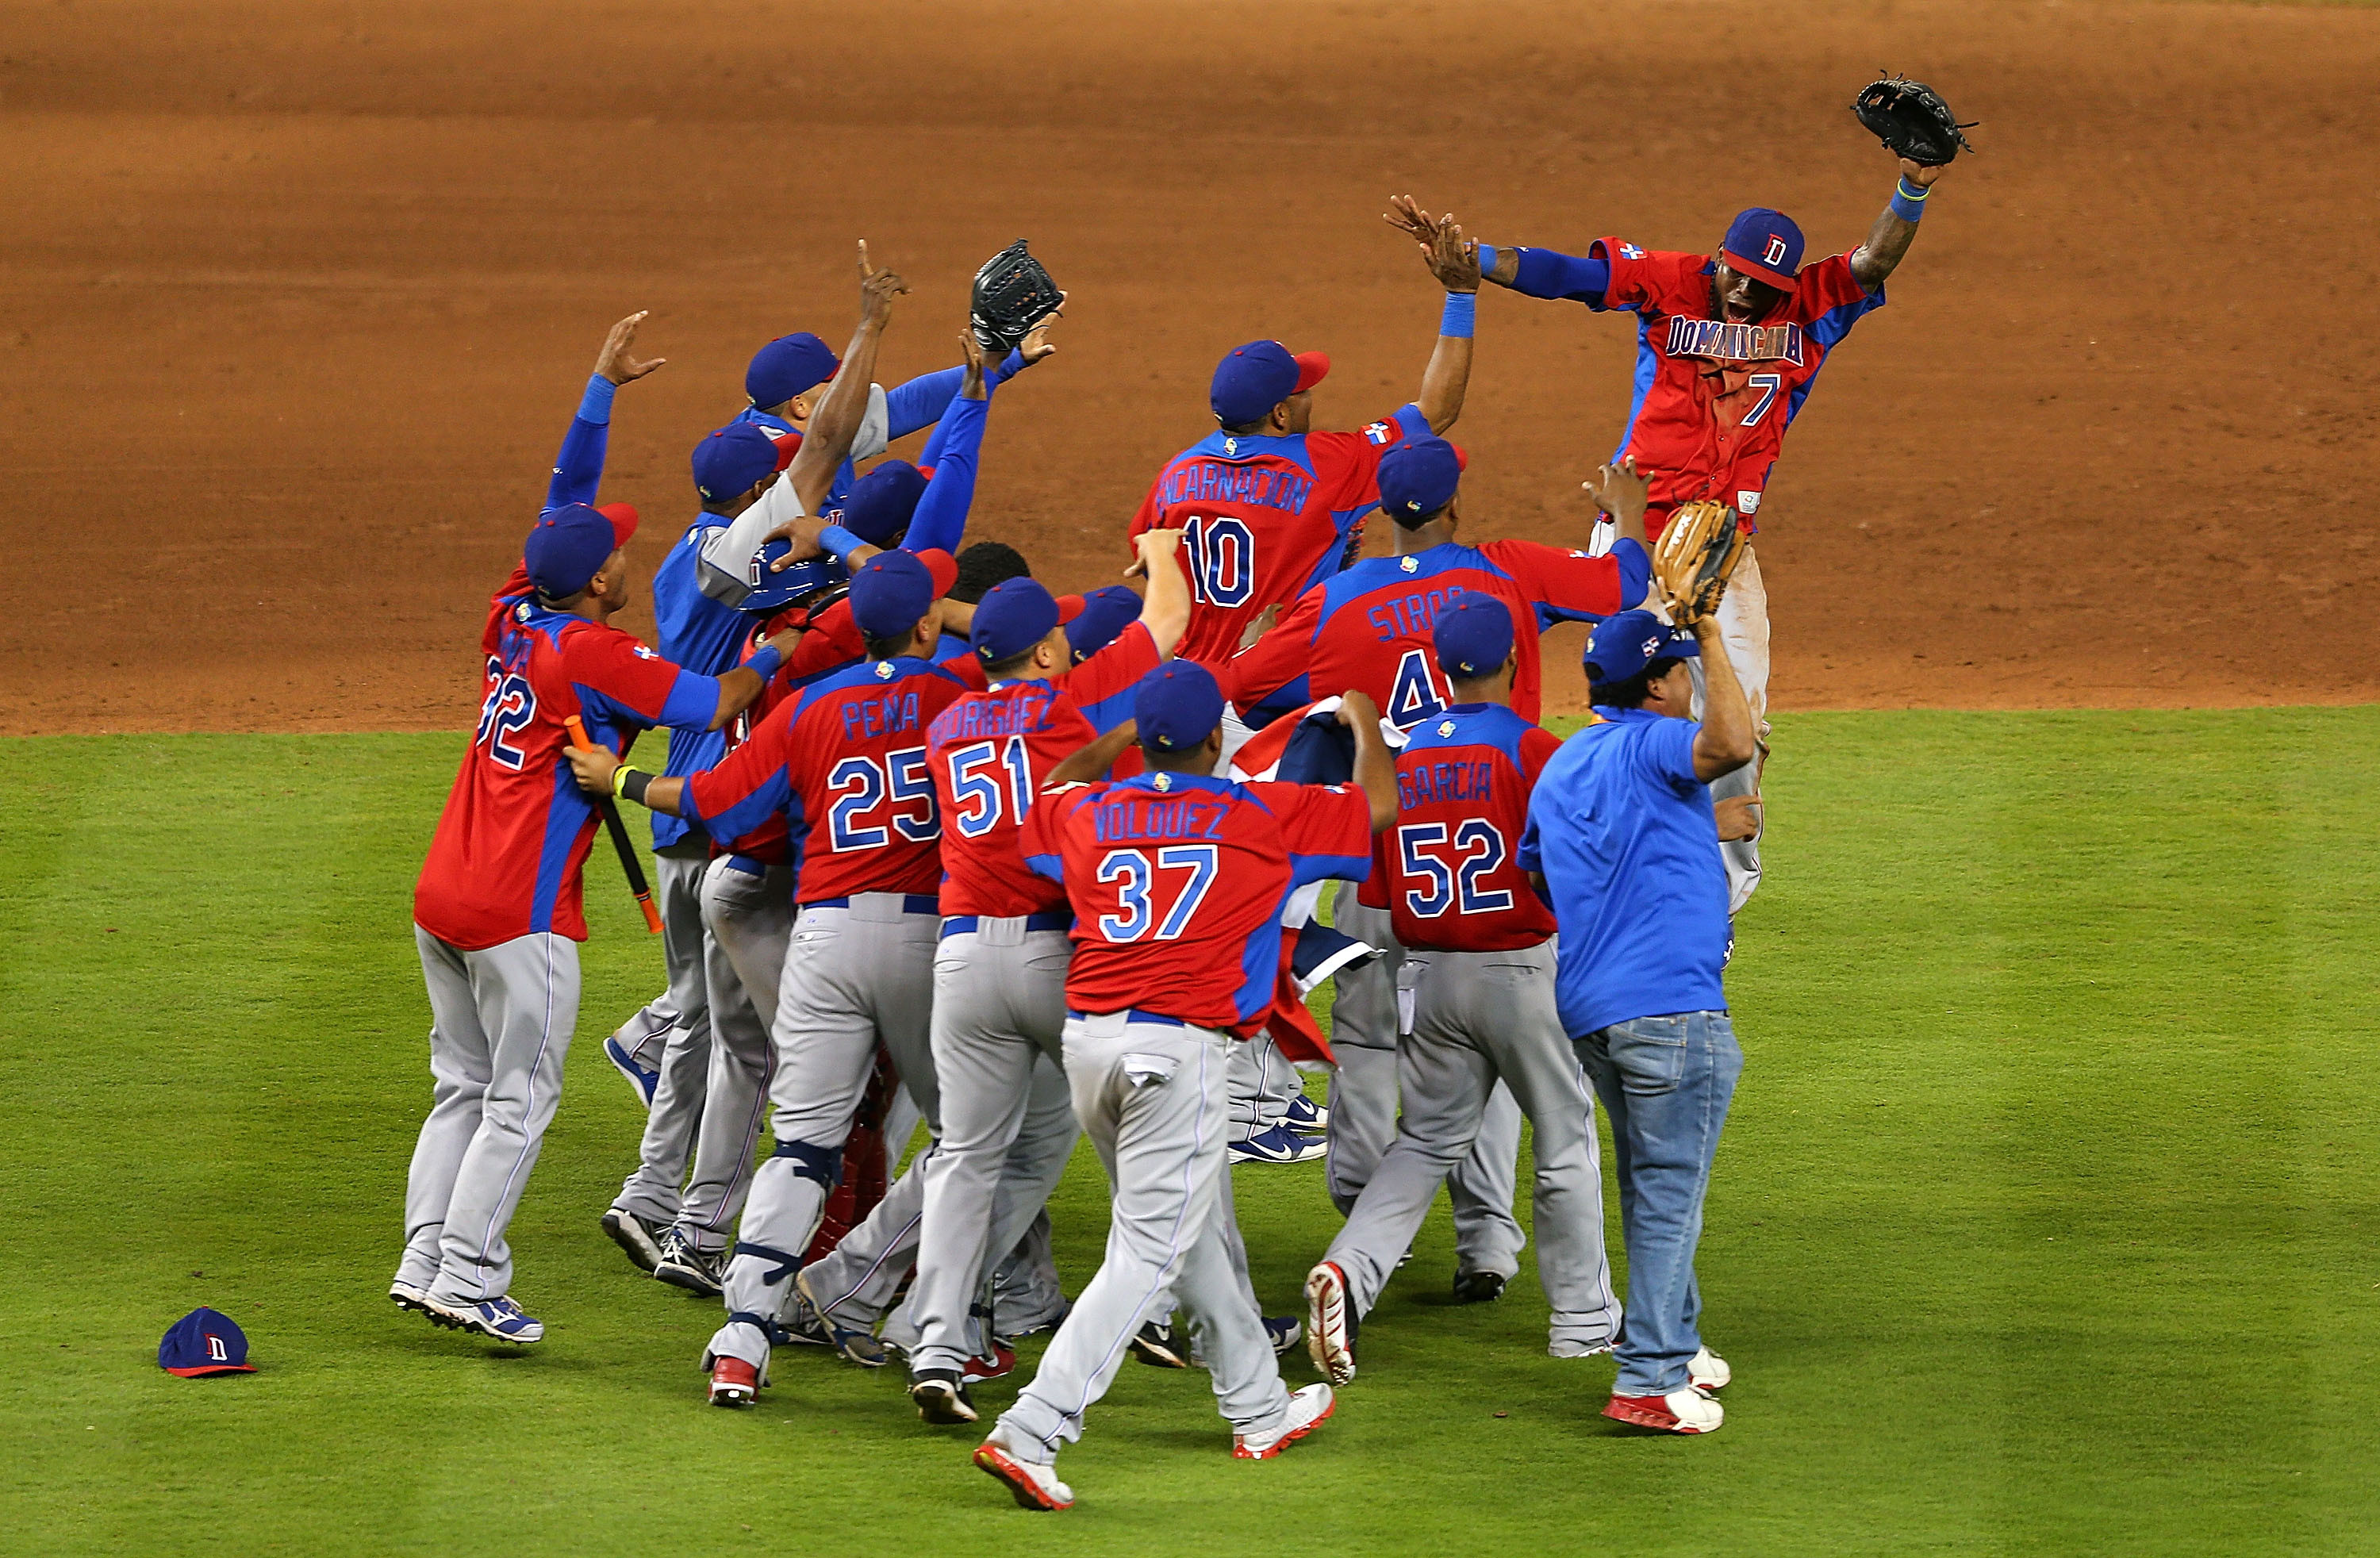 (Video) Holland 1-4 Dominican Republic: World Baseball Classic highlights